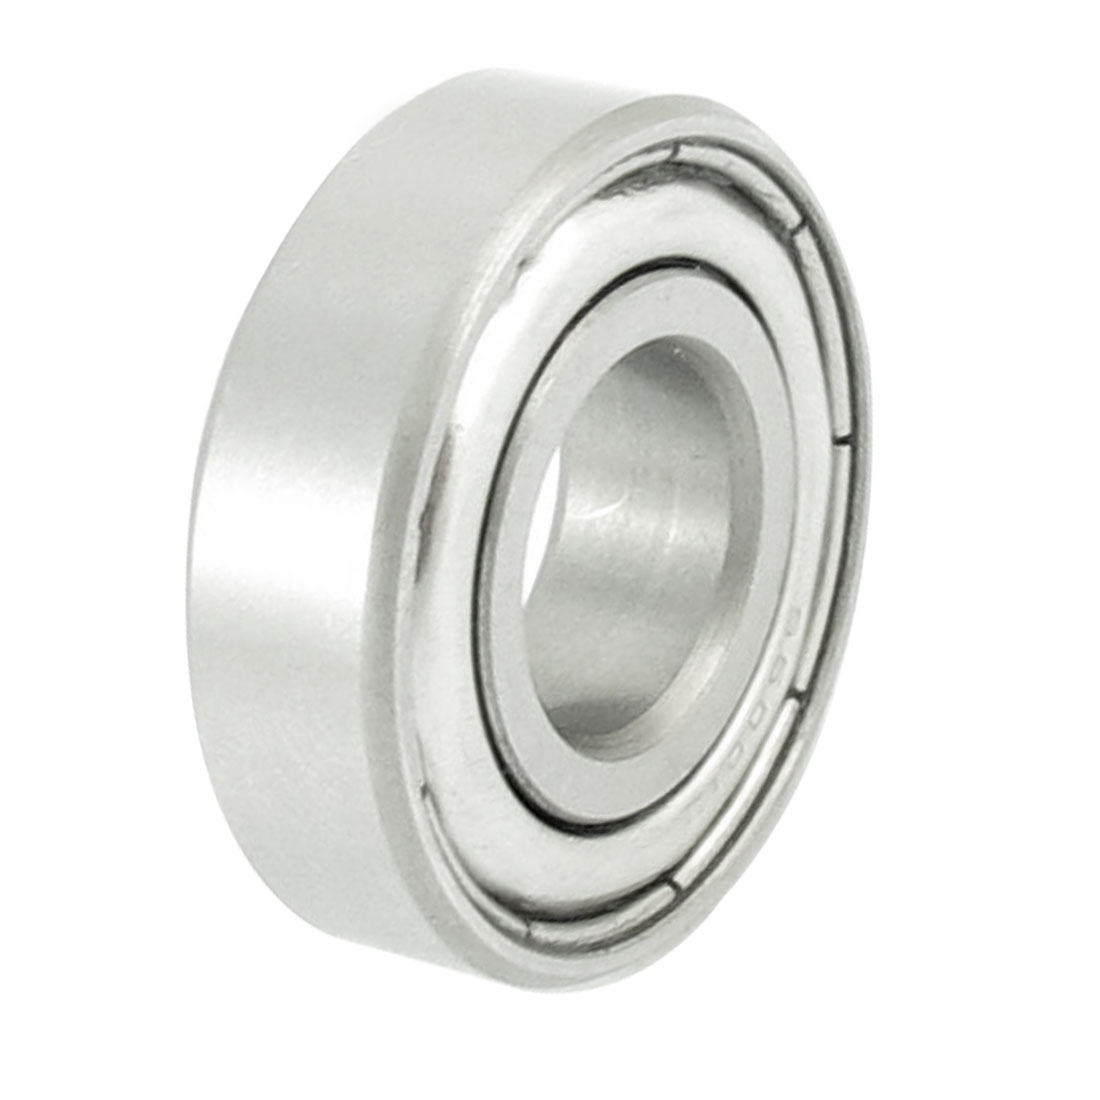 Stainless Steel 28mm x 12mm x 8mm Sealed Deep Groove Ball Bearing